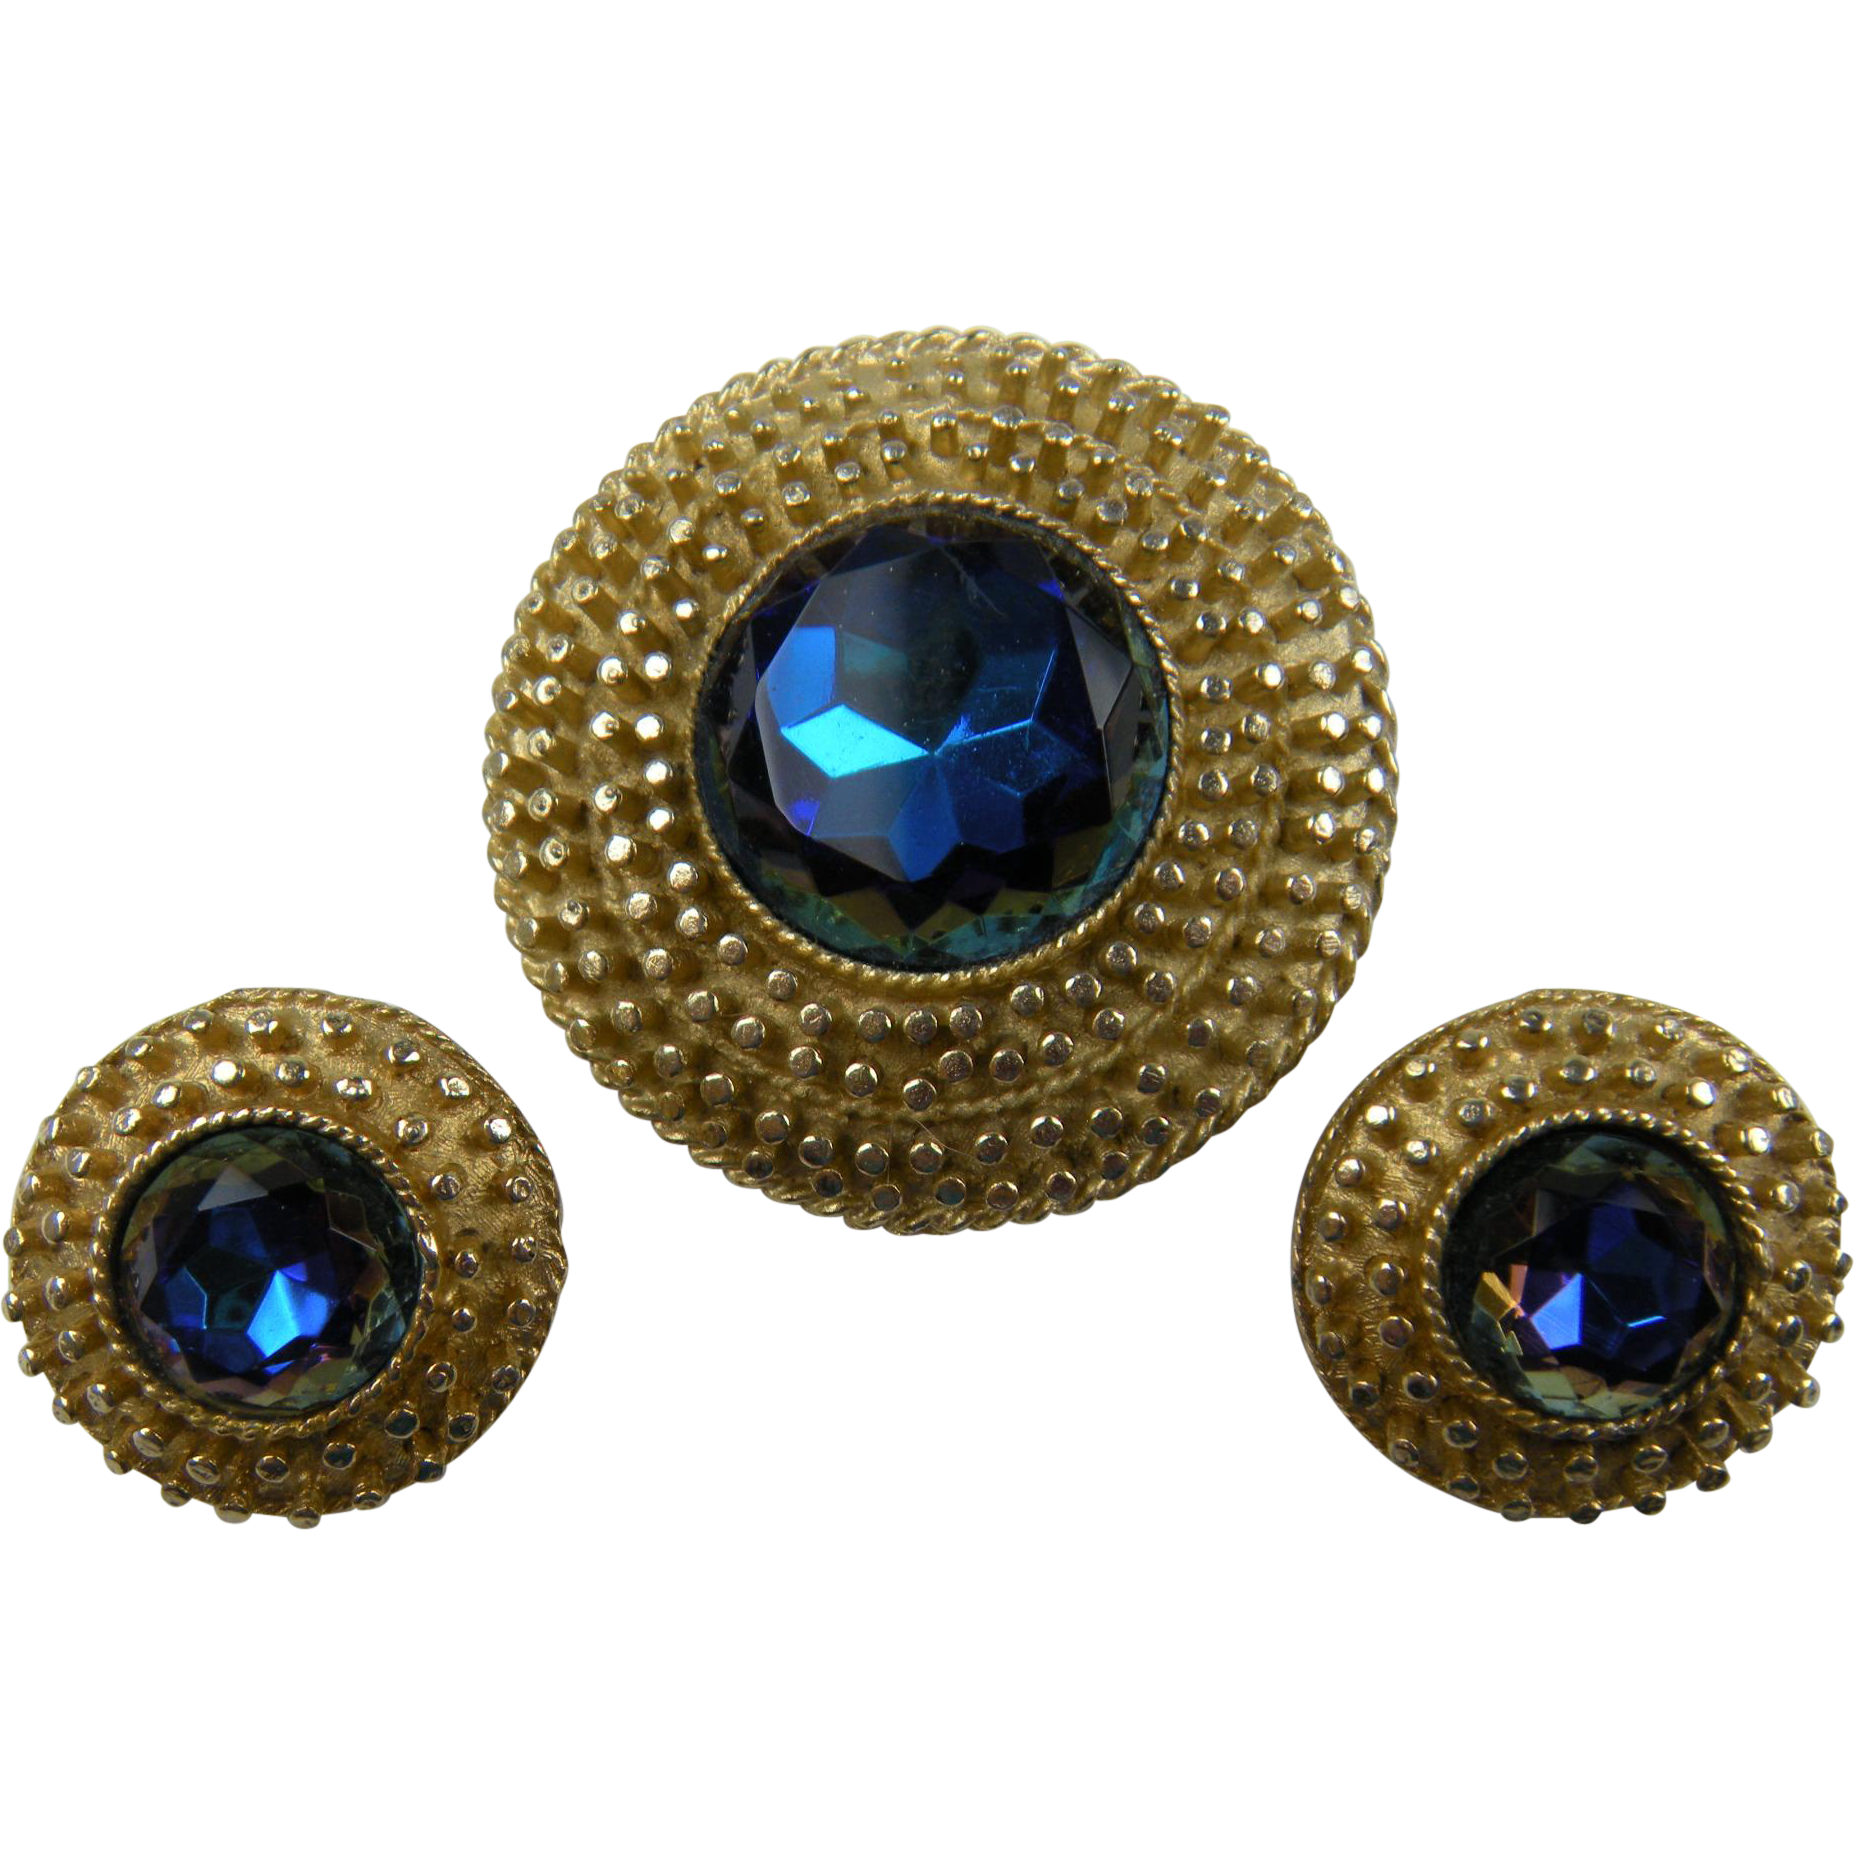 Demi Parure Brooch with Matching Earrings Watermelon Stones